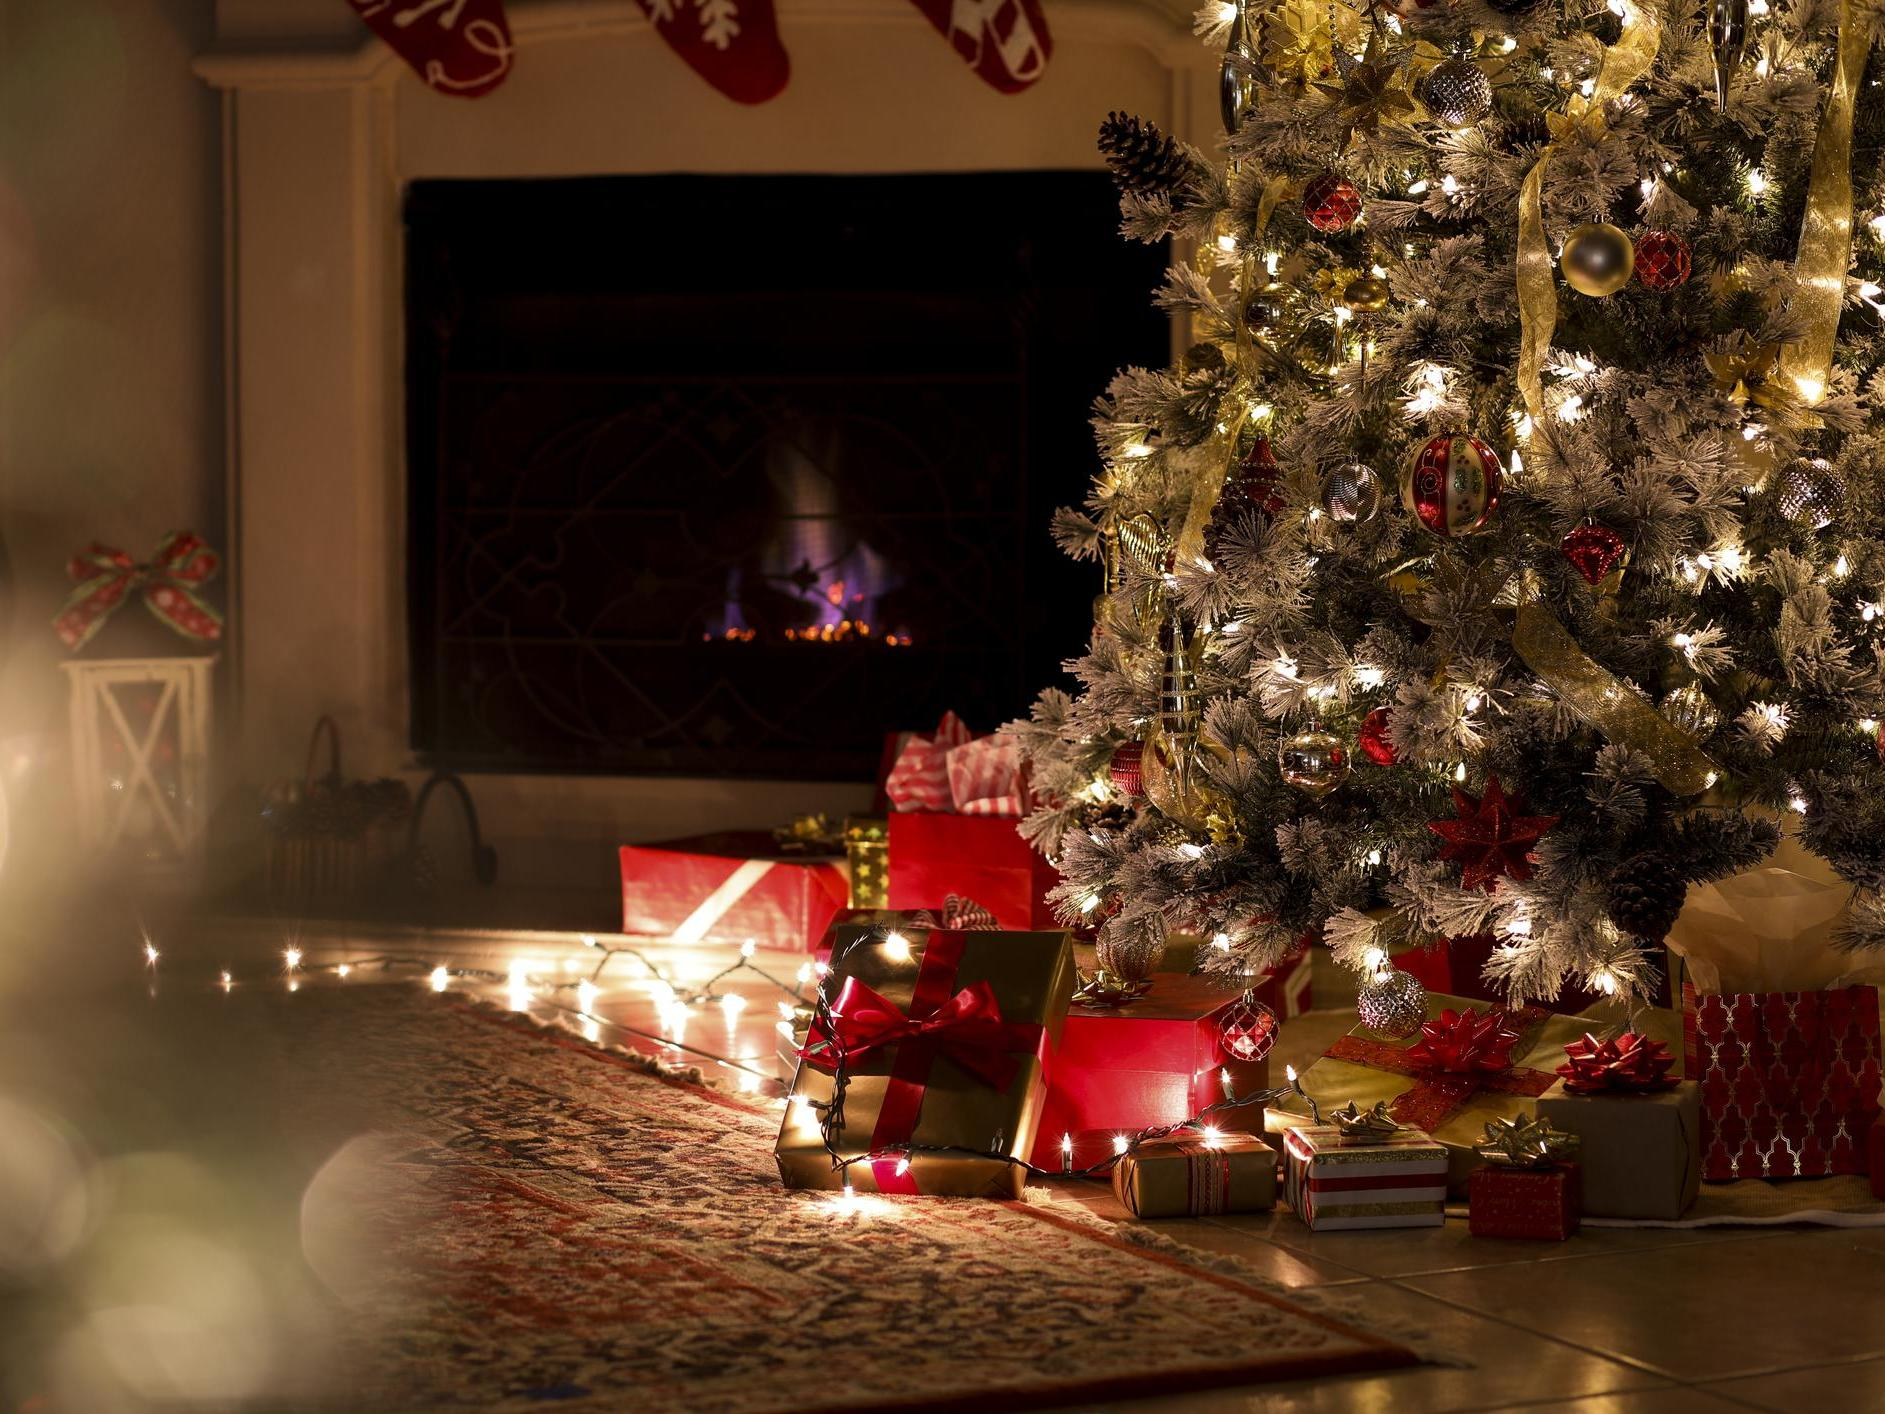 Christmas lights could pose fire risk, warn consumer experts